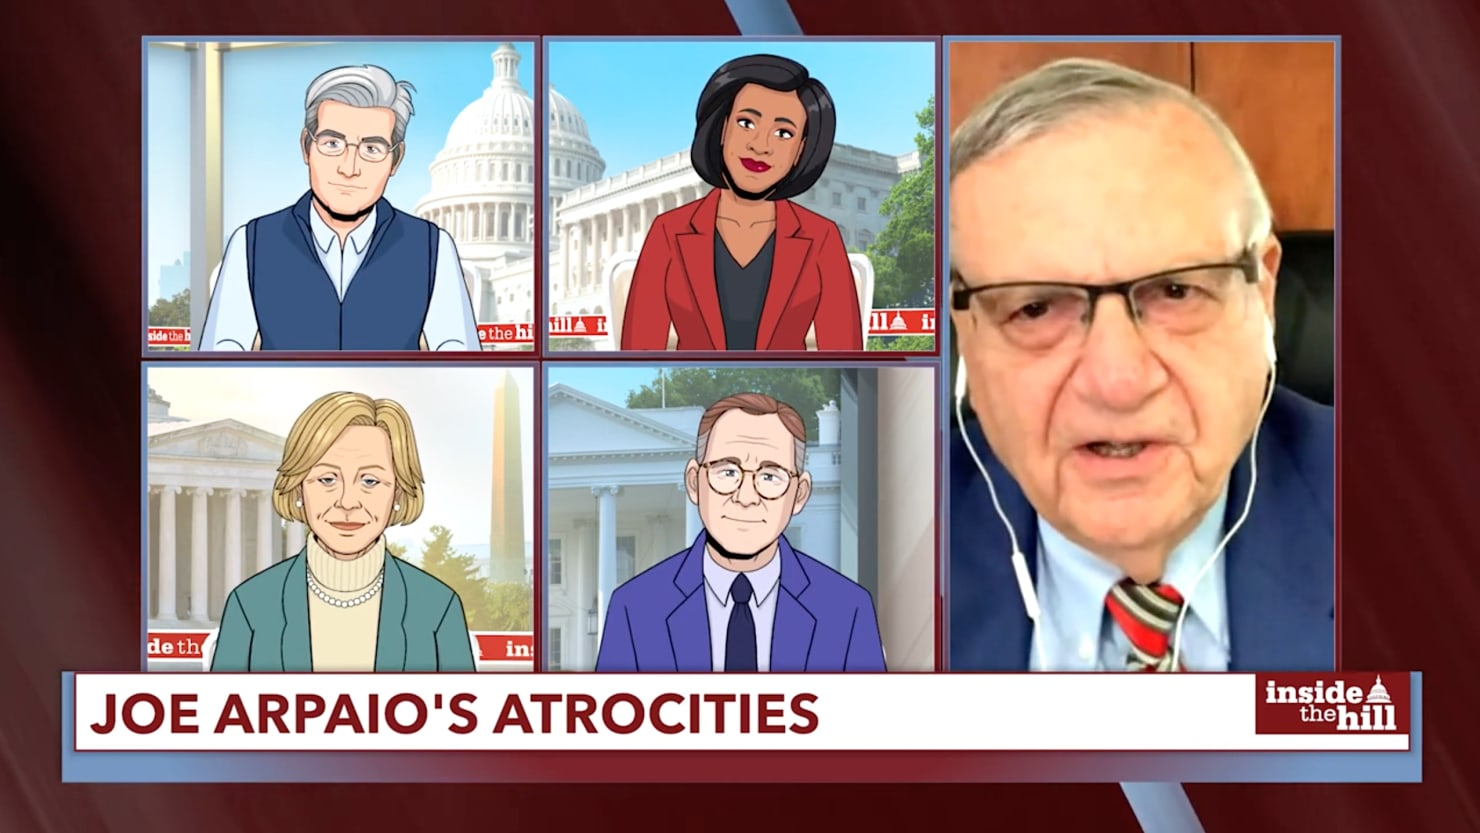 Joe Arpaio Gets Brutally Embarrassed by Colbert's 'Tooning Out the News'